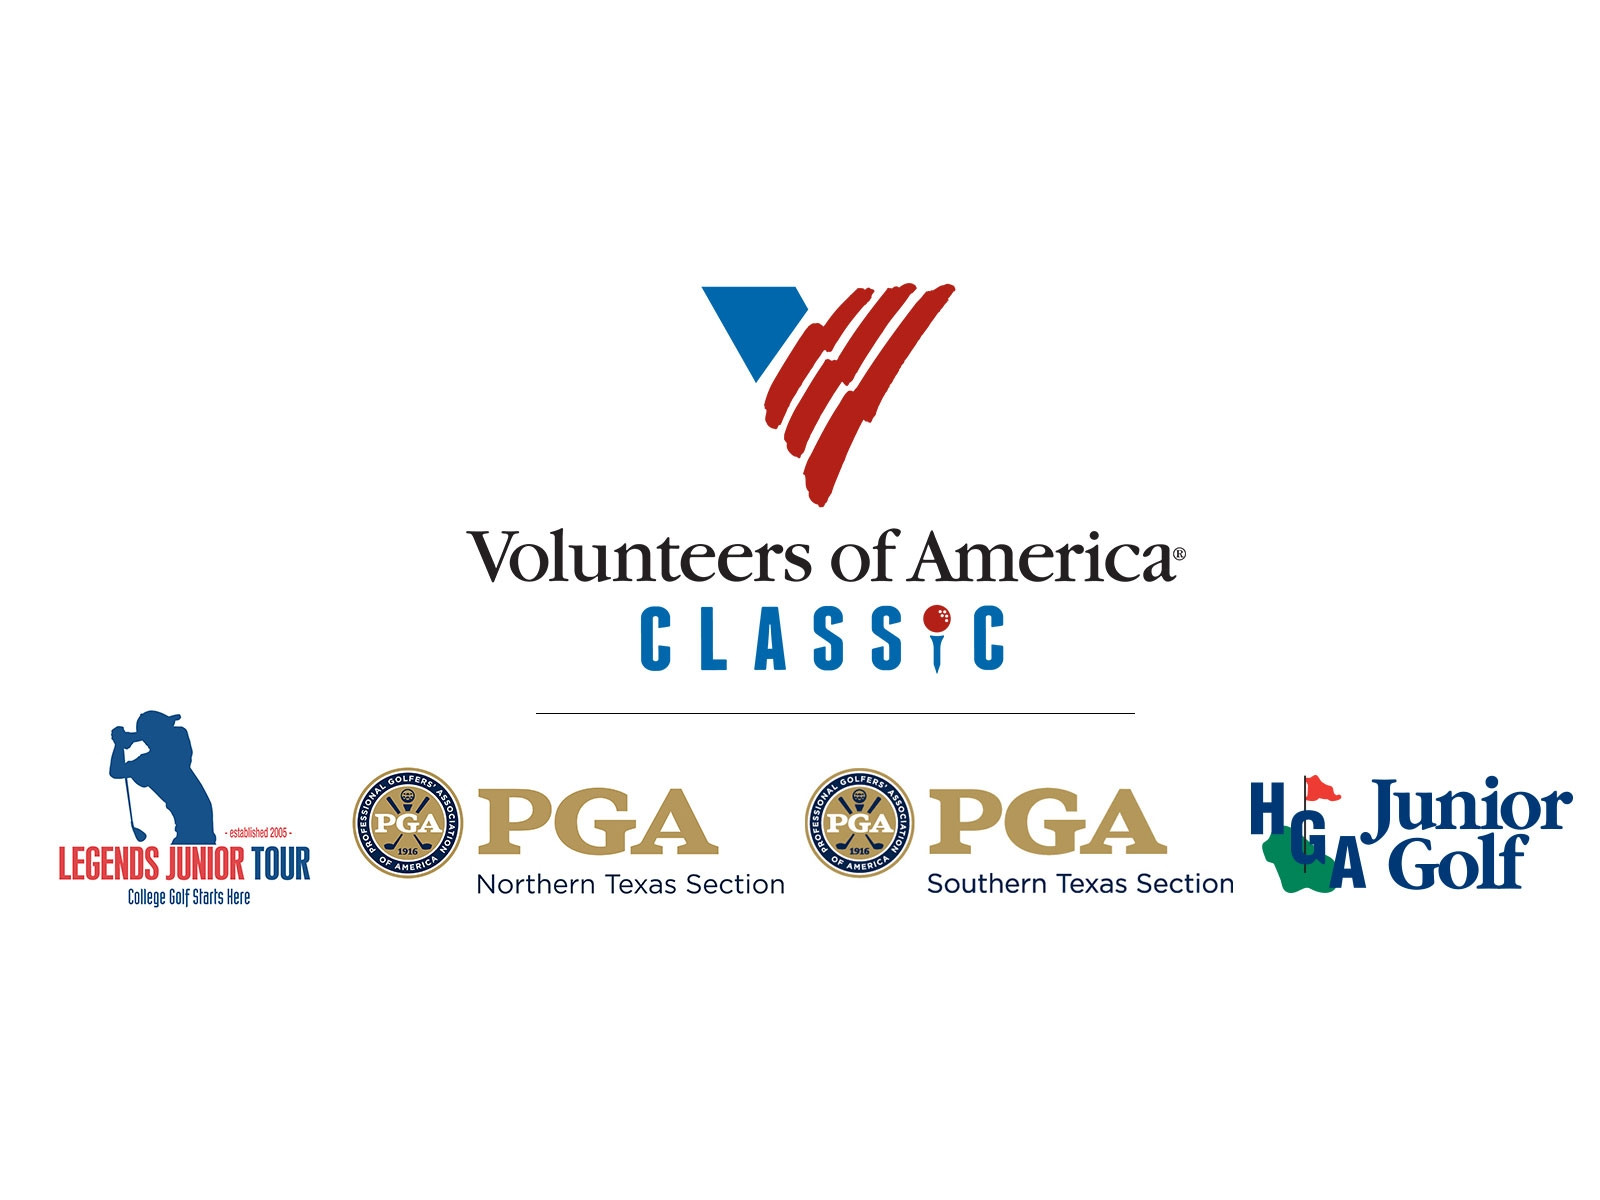 Volunteers of America Classic Partners with the Texas Junior Golf Alliance in Competition for Exemption into the LPGA Tournament